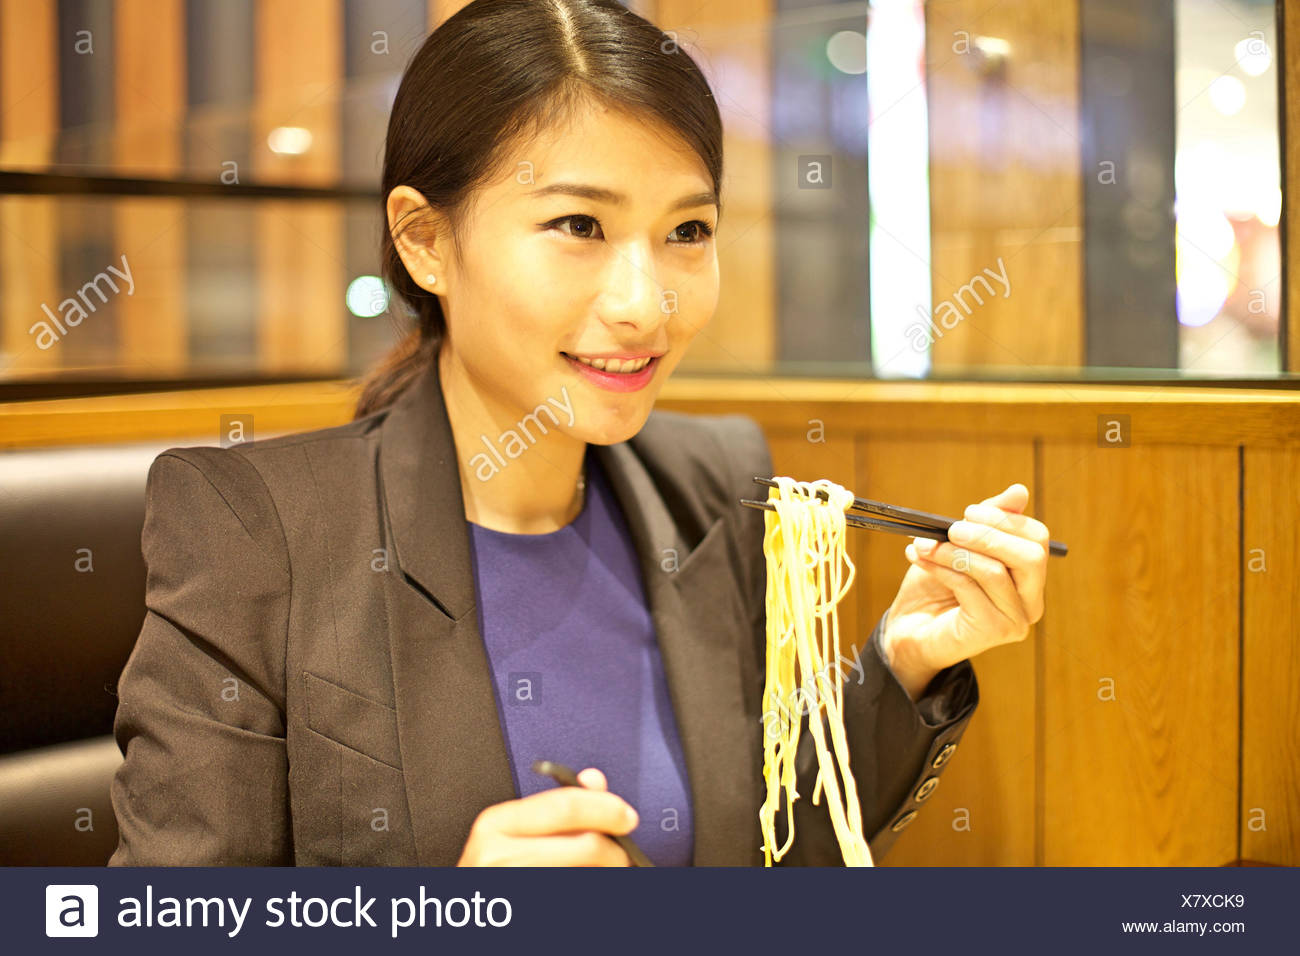 Chinese Woman eating noodles in restaurant - Stock Image